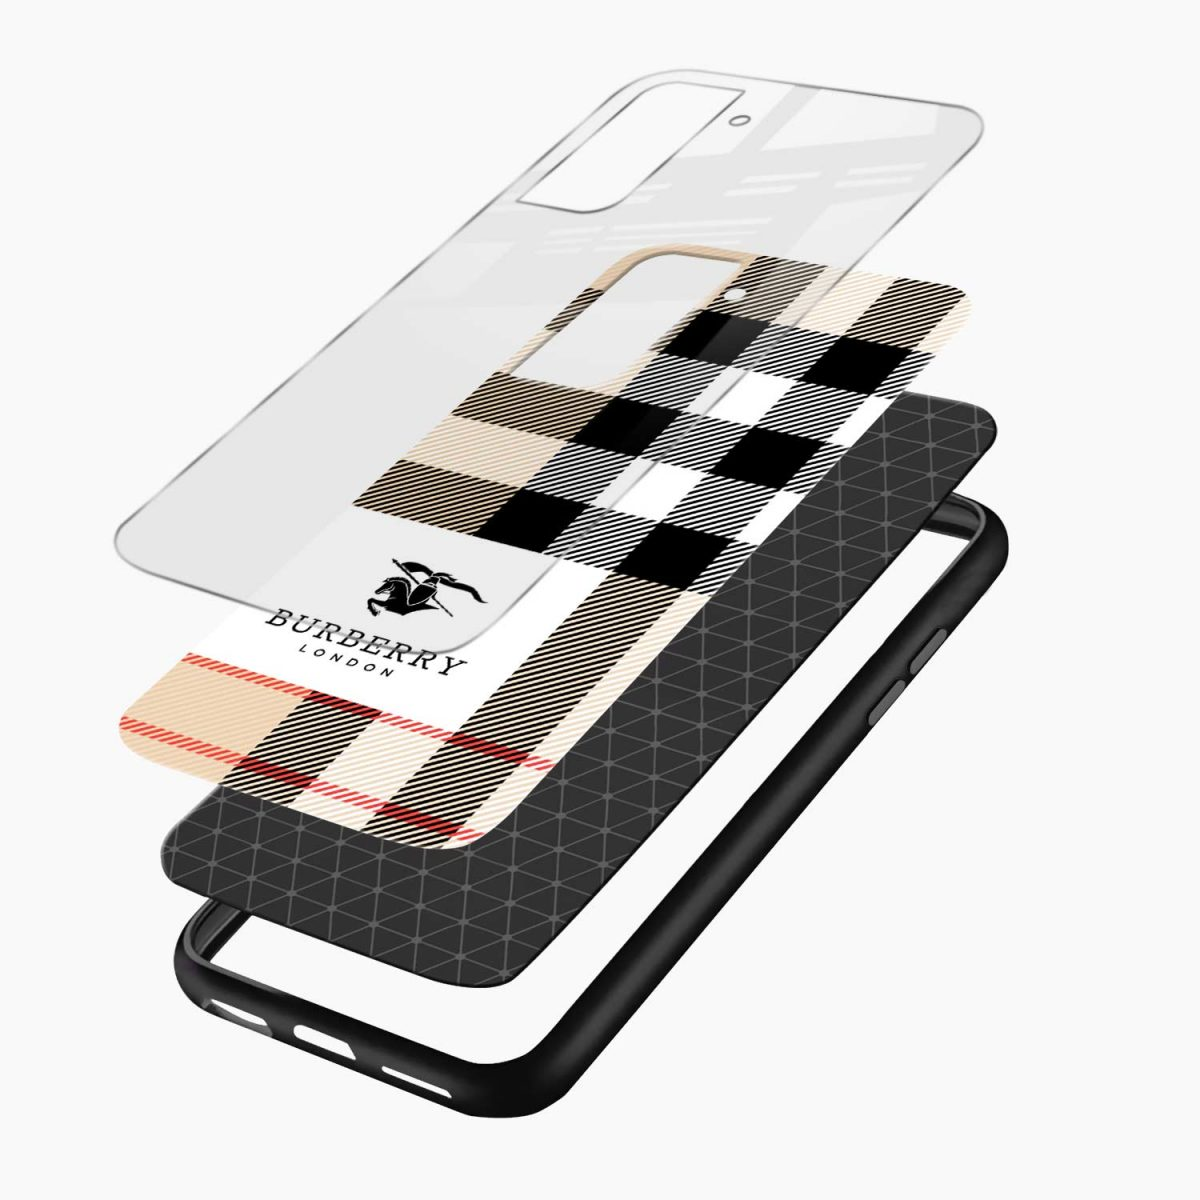 burberry cross lines layers view samsung s21 plug back cover